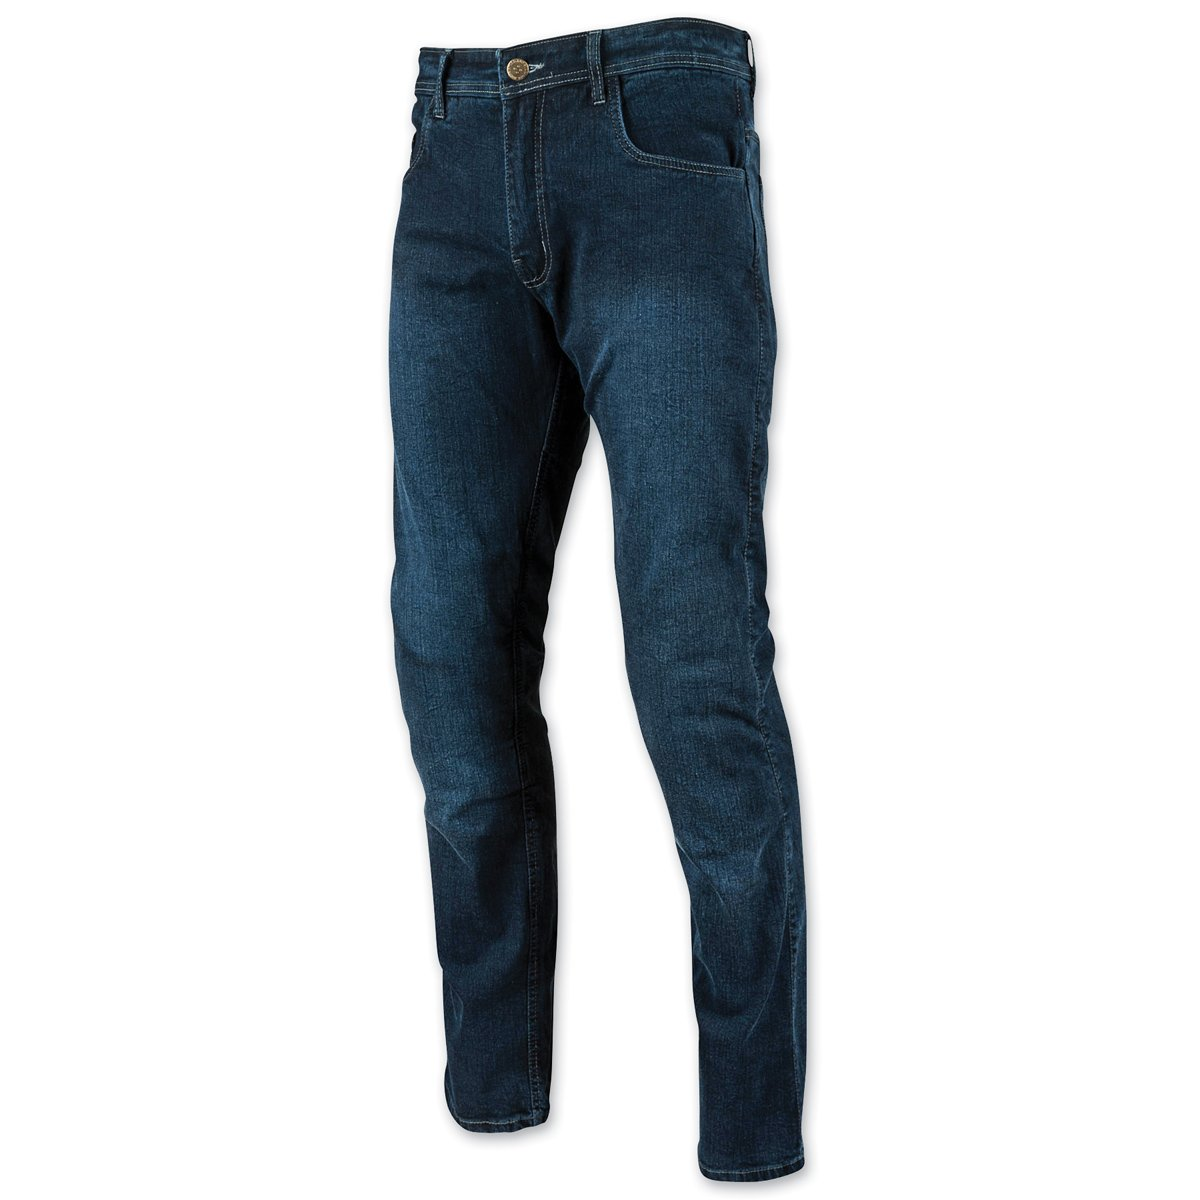 38X34 Speed and Strength Mens Critical Mass Armored Dark Blue Jeans